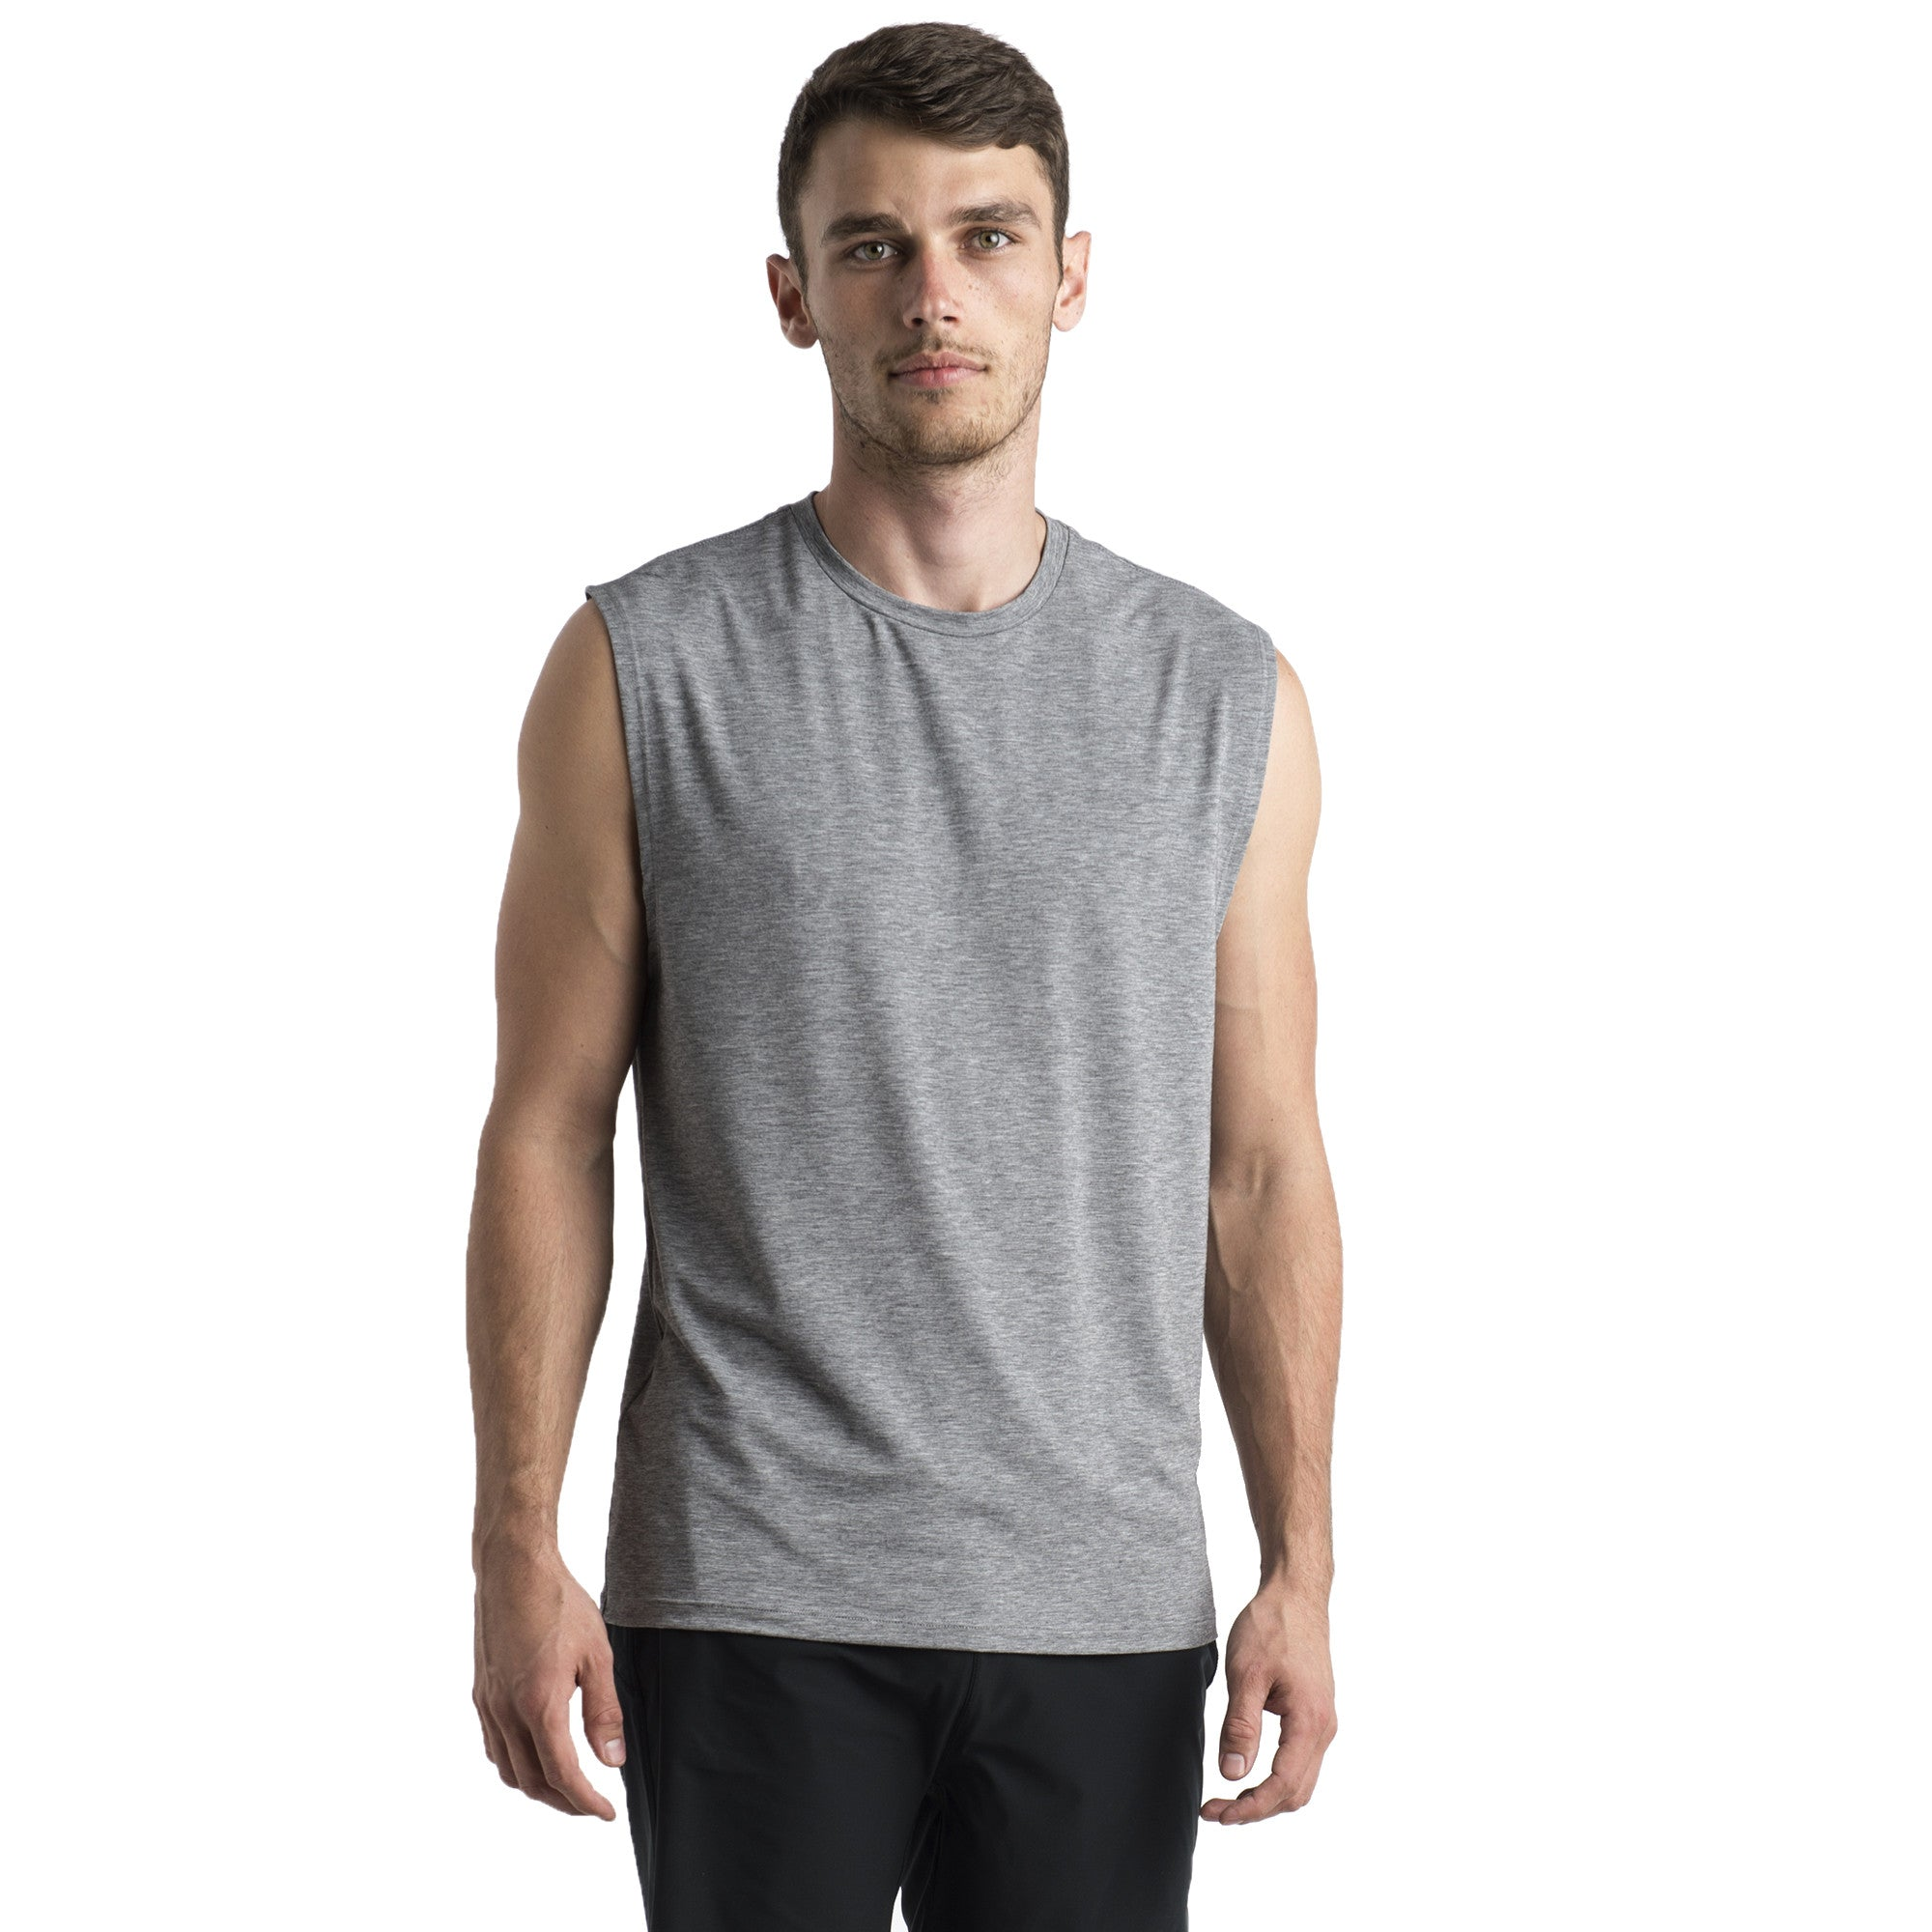 MADRE SLEEVELESS T - HEATHER GREY